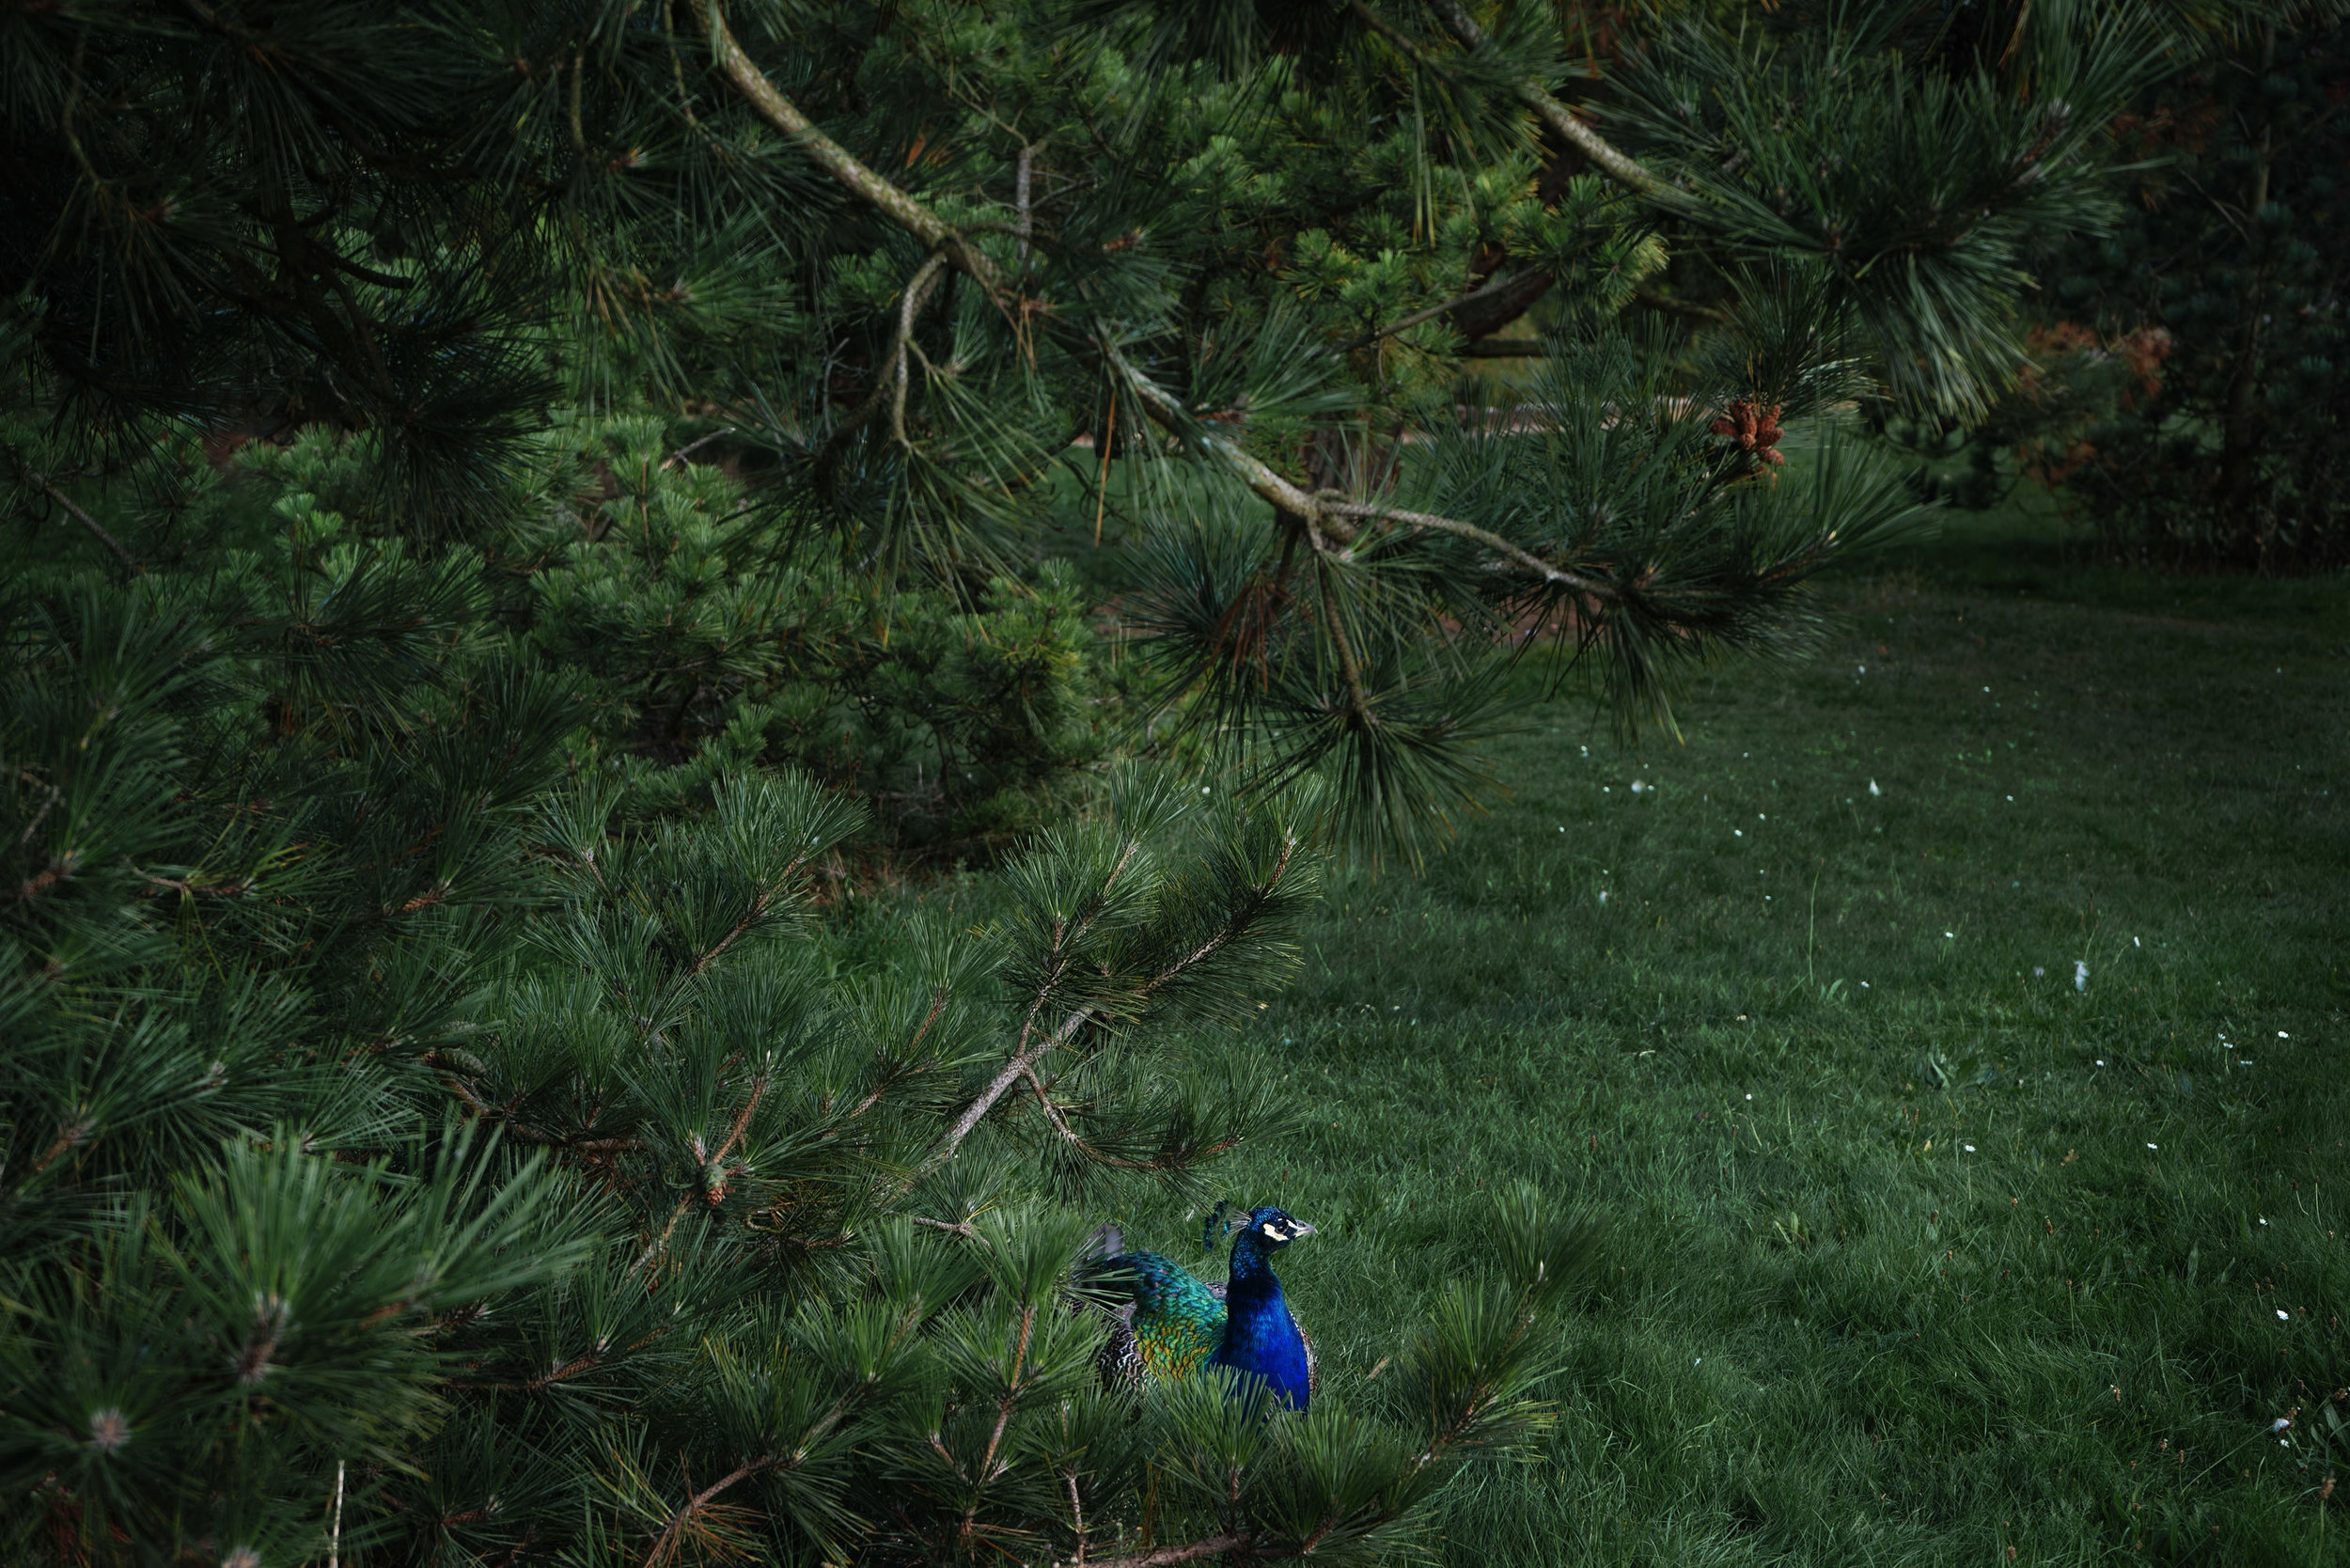 shen-wei-between-blossoms-photography-of-china-peacock.jpg